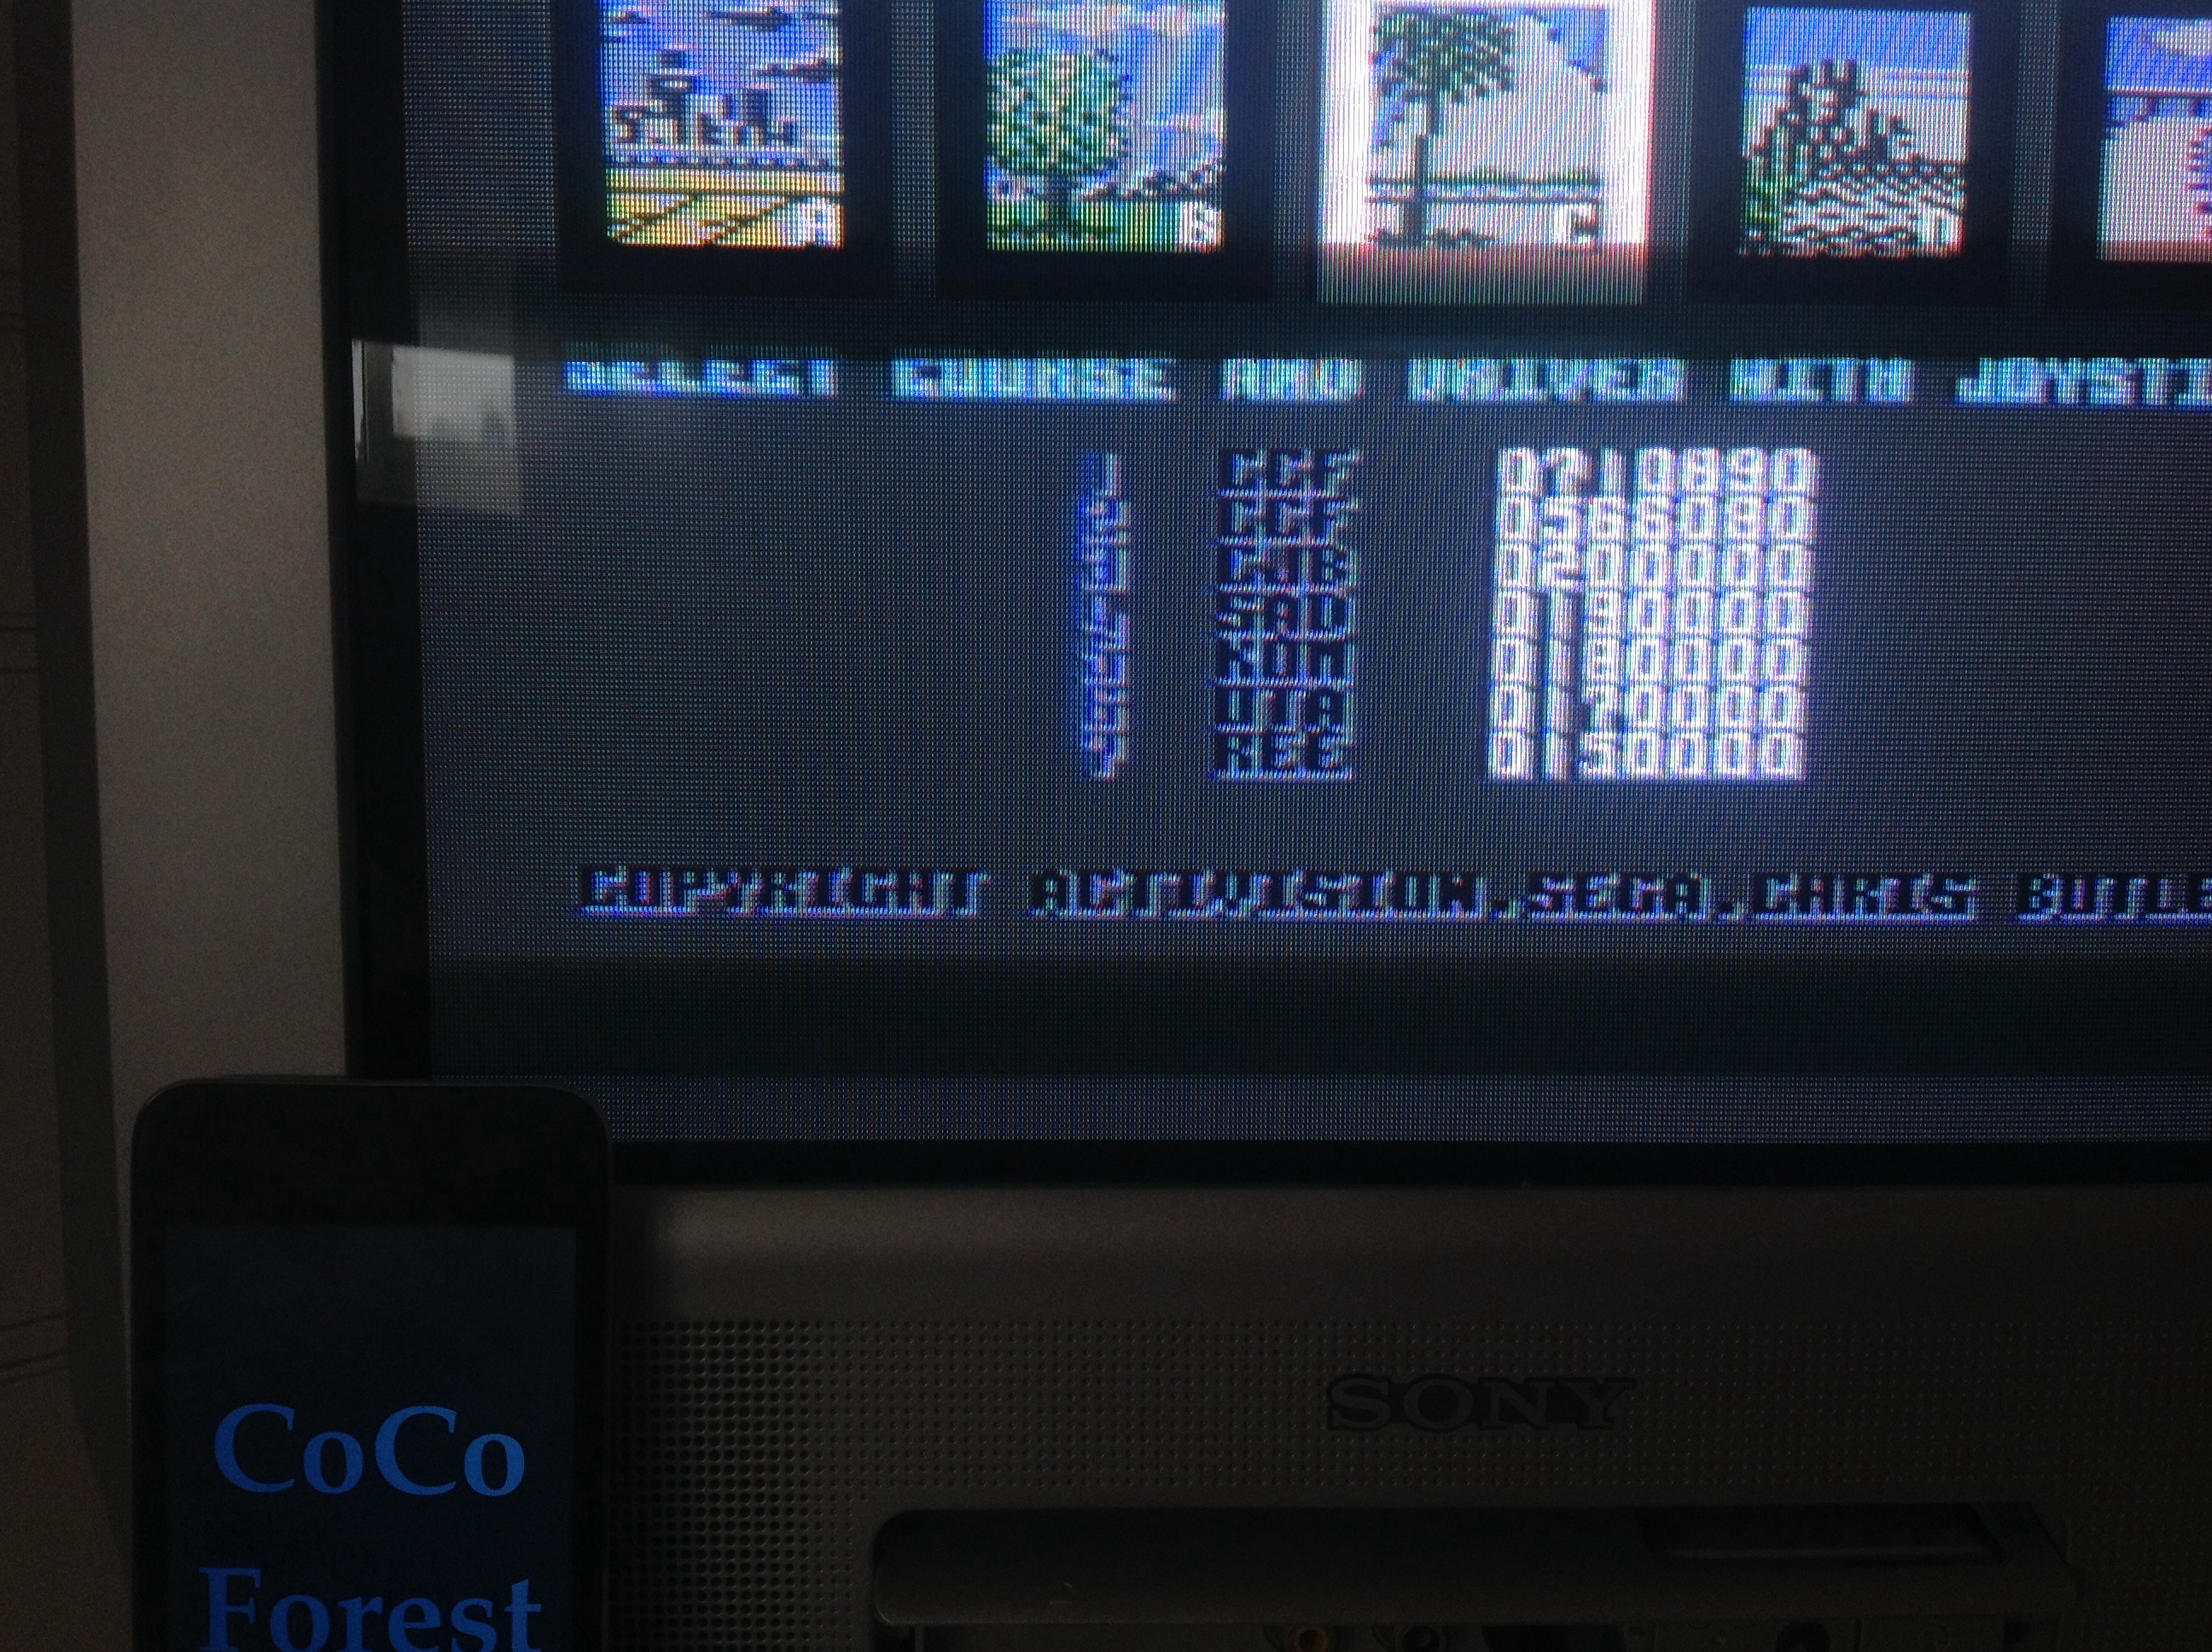 CoCoForest: Power Drift (Commodore 64) 710,890 points on 2015-03-17 10:00:23